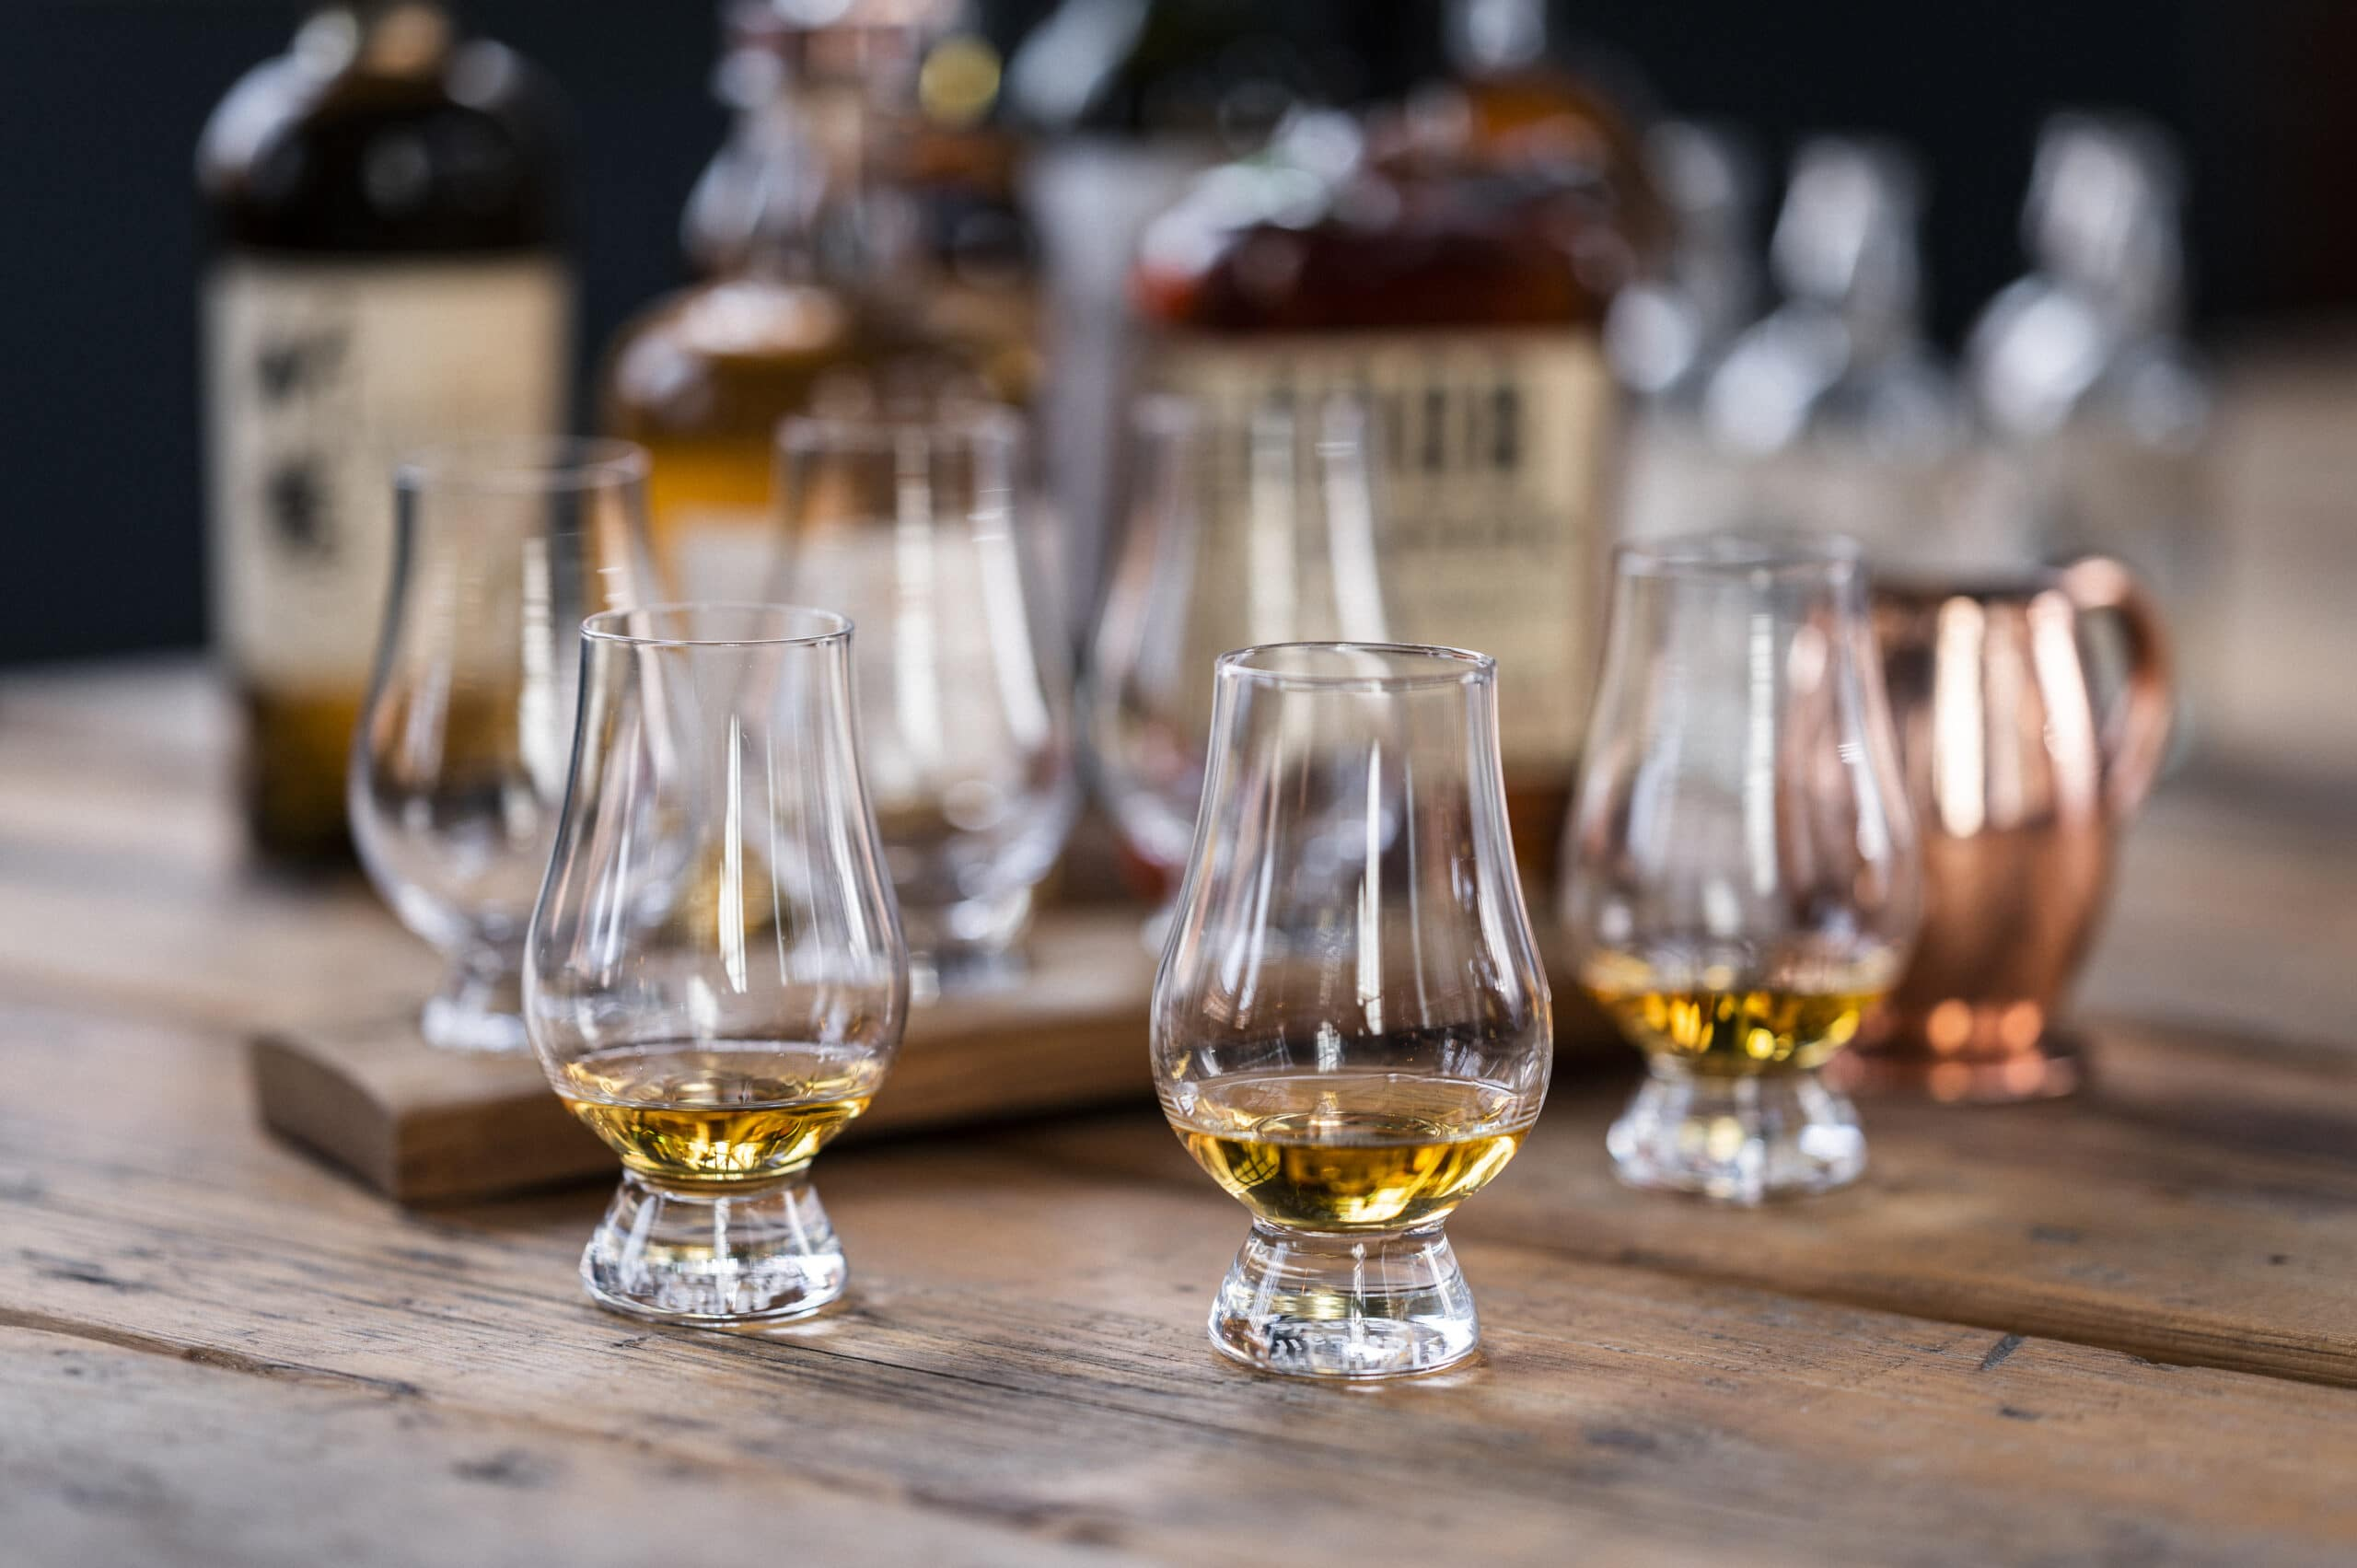 Whisky in snifter glasses at Grain and Glass, Birmingham